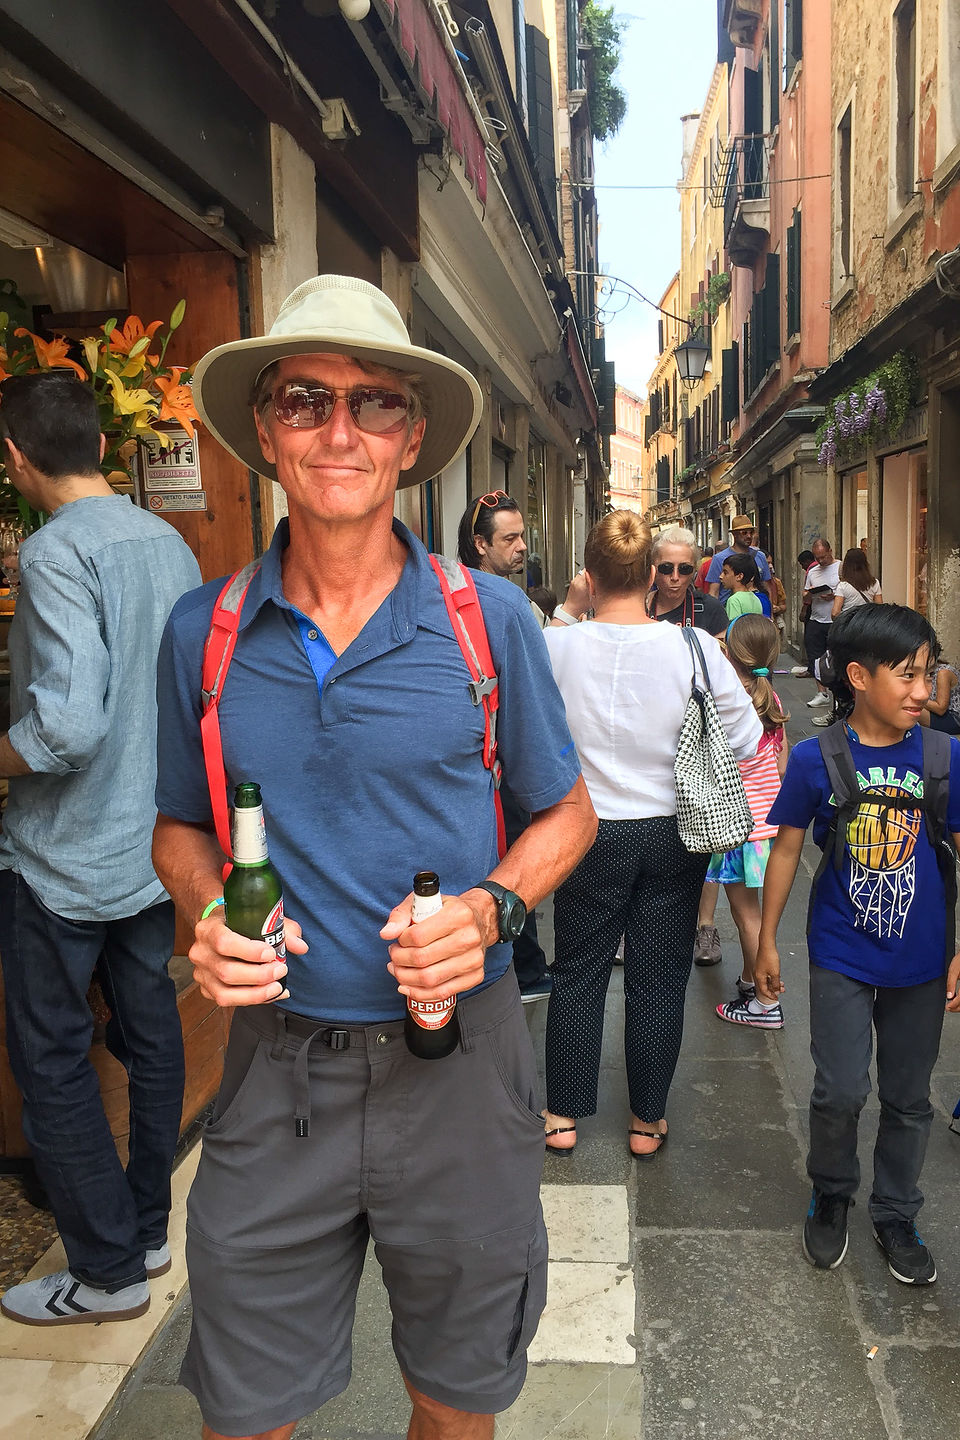 Wandering the back alleys of Venice (with beer)